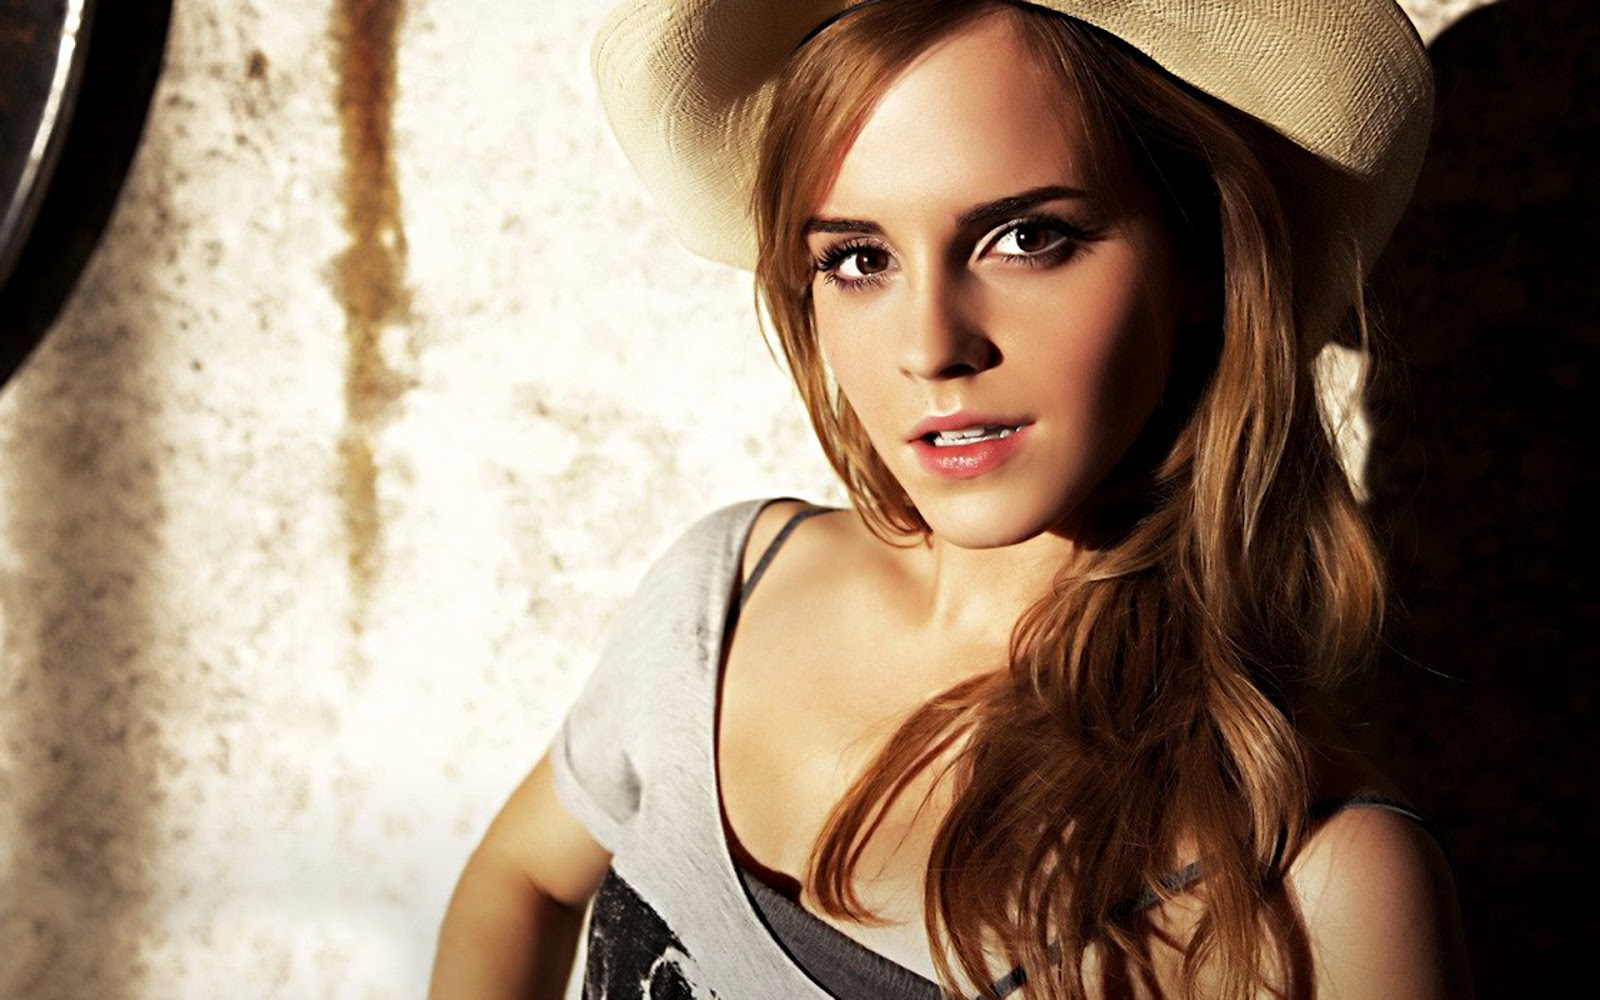 Wellcome To Bollywood HD Wallpapers: Emma Watson Hollywood Actress Full HD Wallpapers